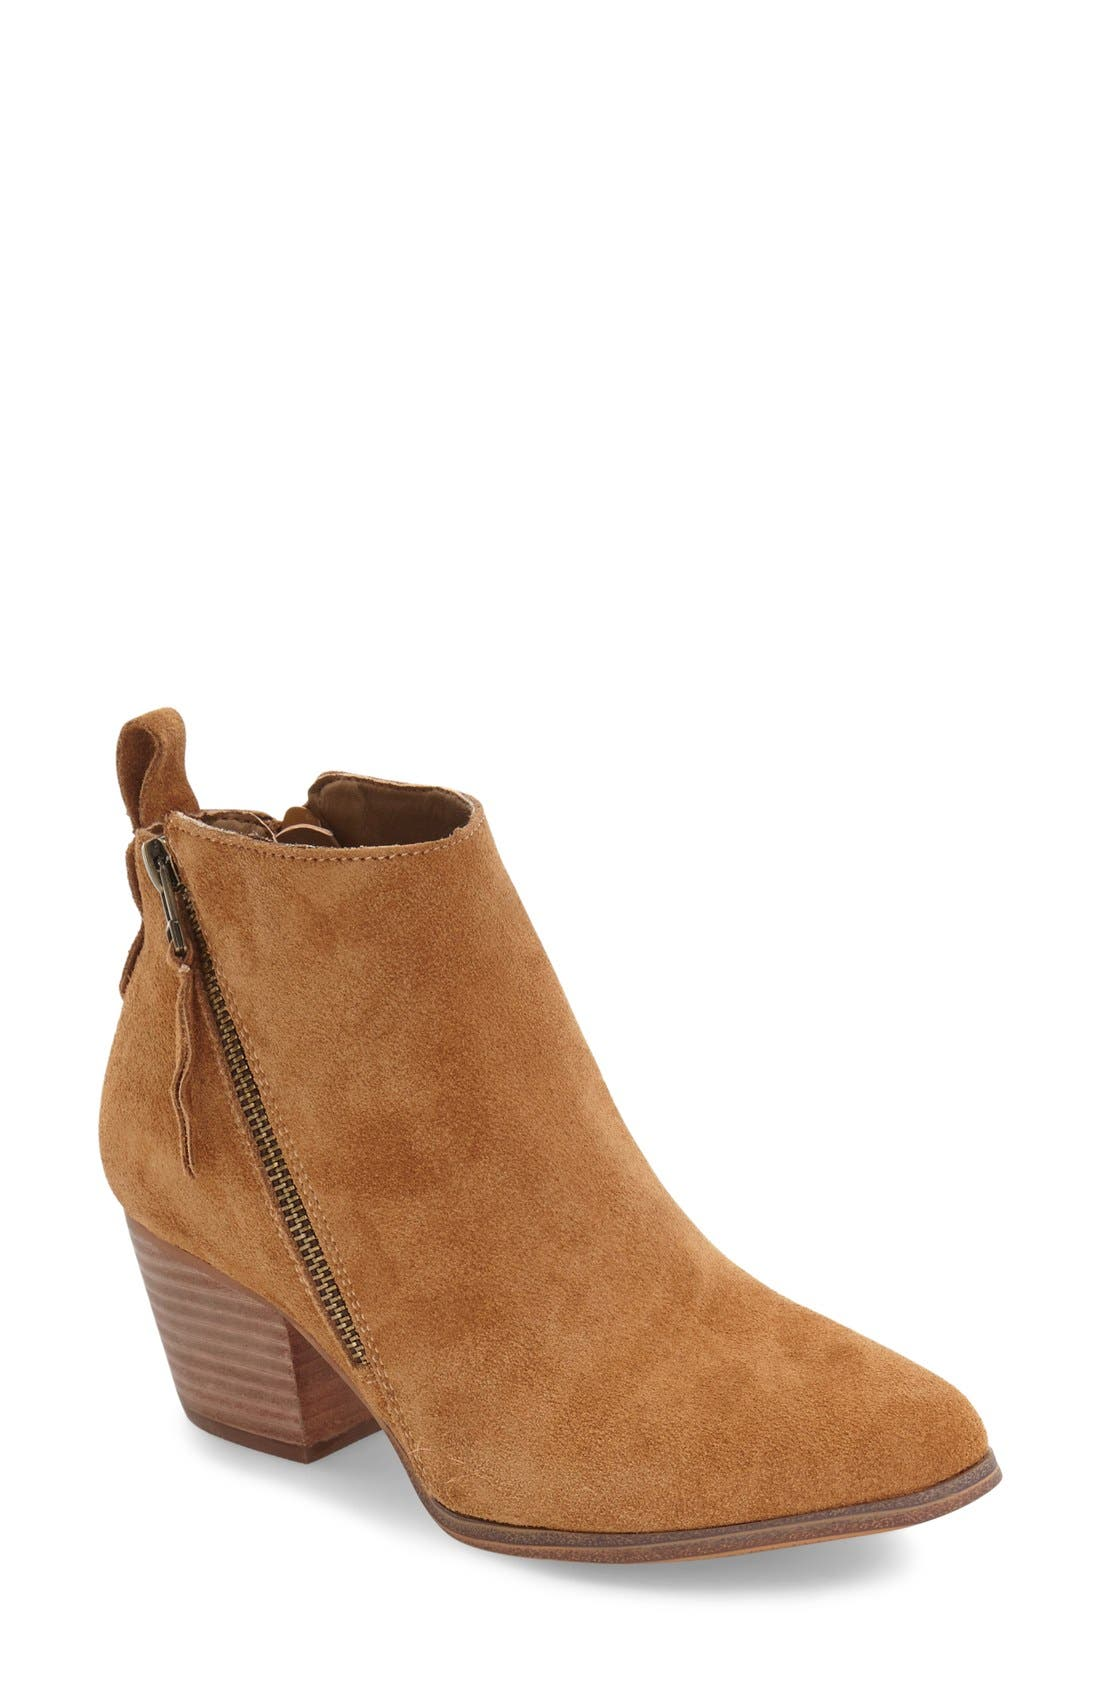 Main Image - Sole Society Mira Bootie